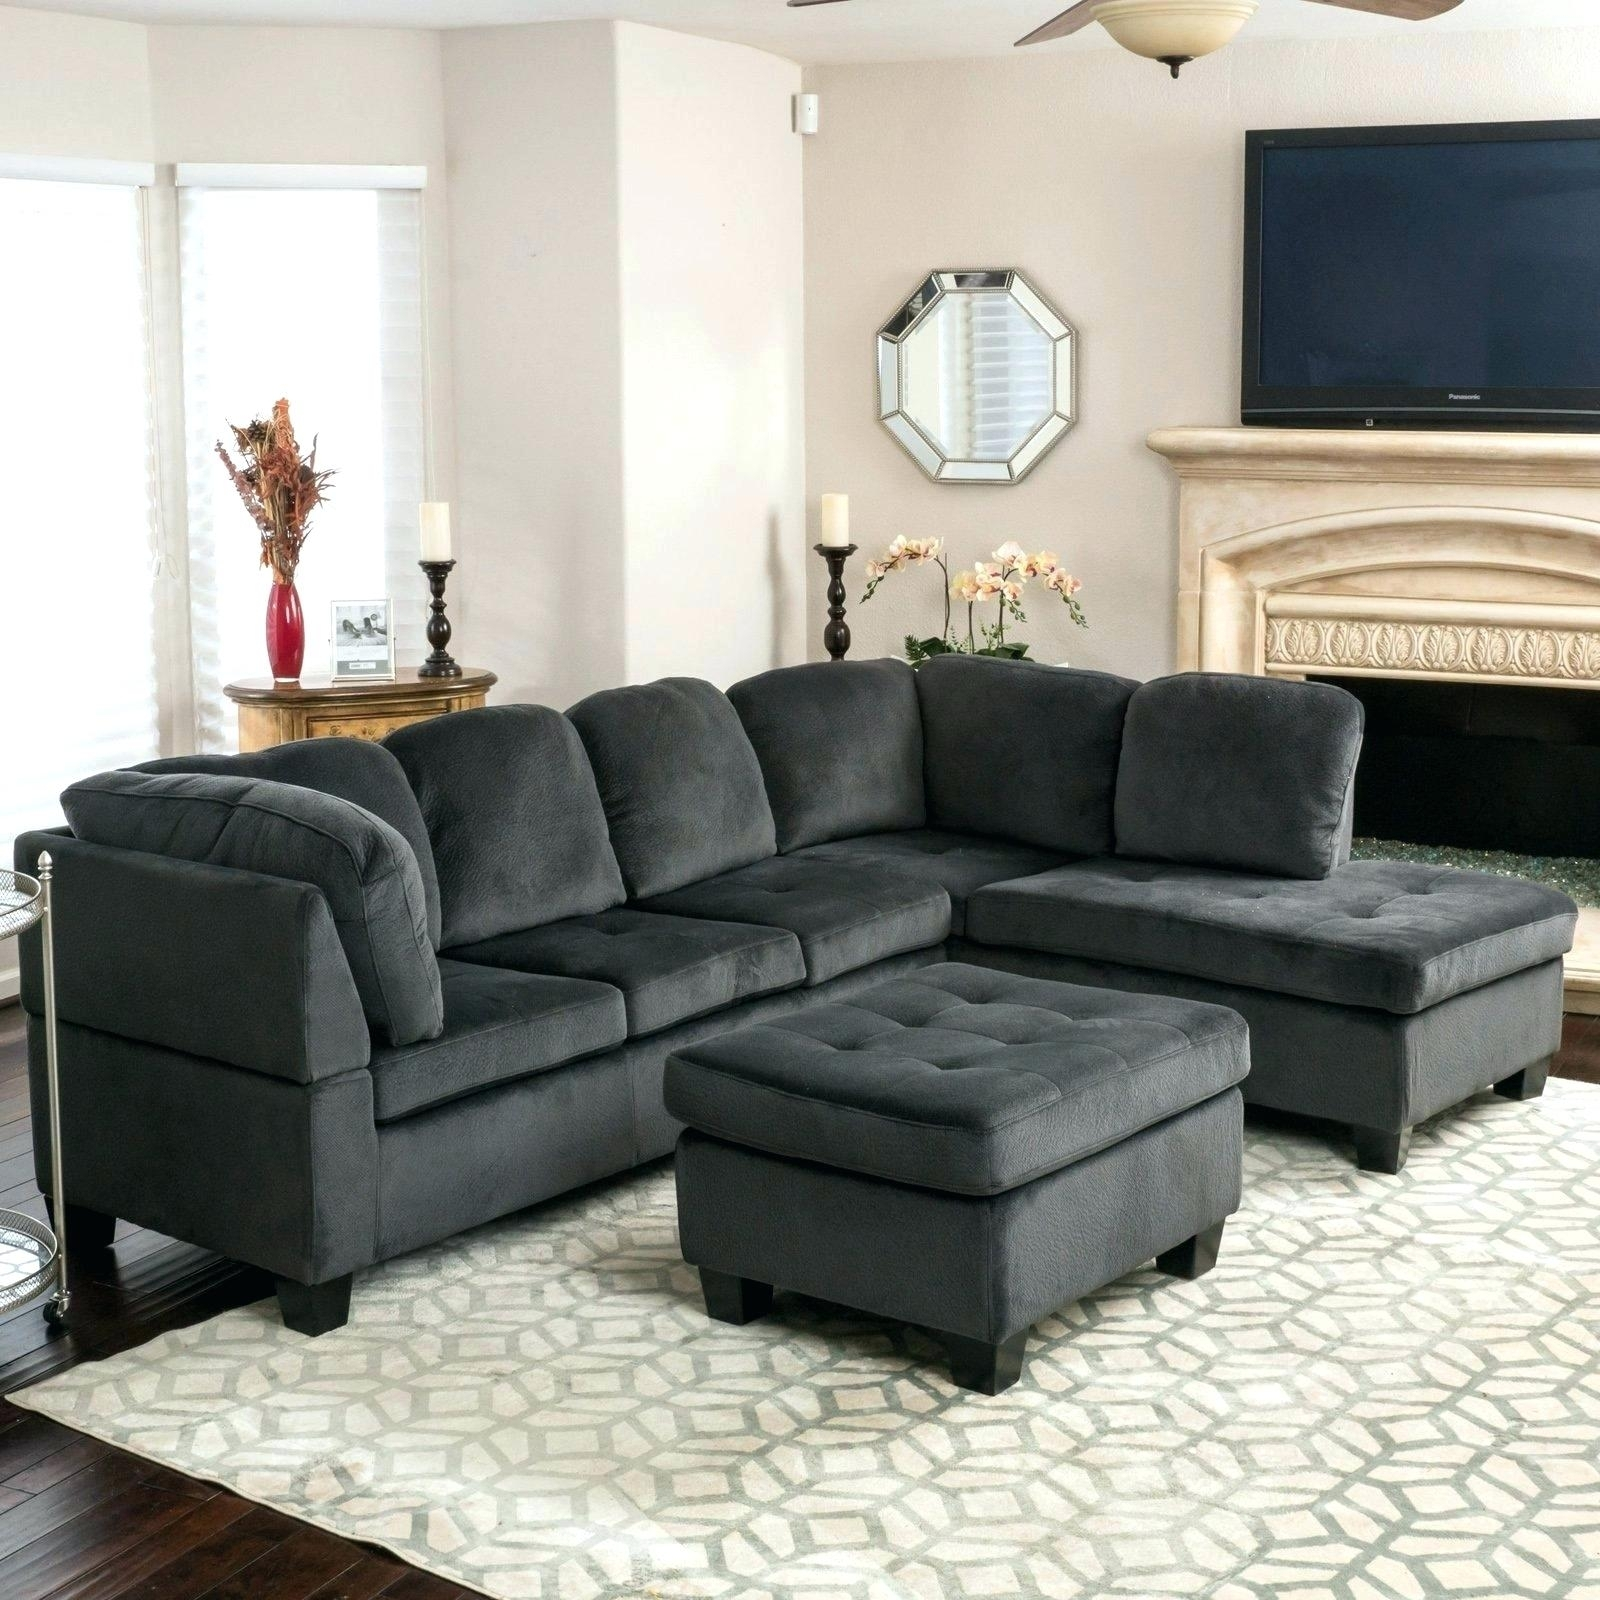 2018 popular canada sale sectional sofas for Leather sectional sofa clearance canada